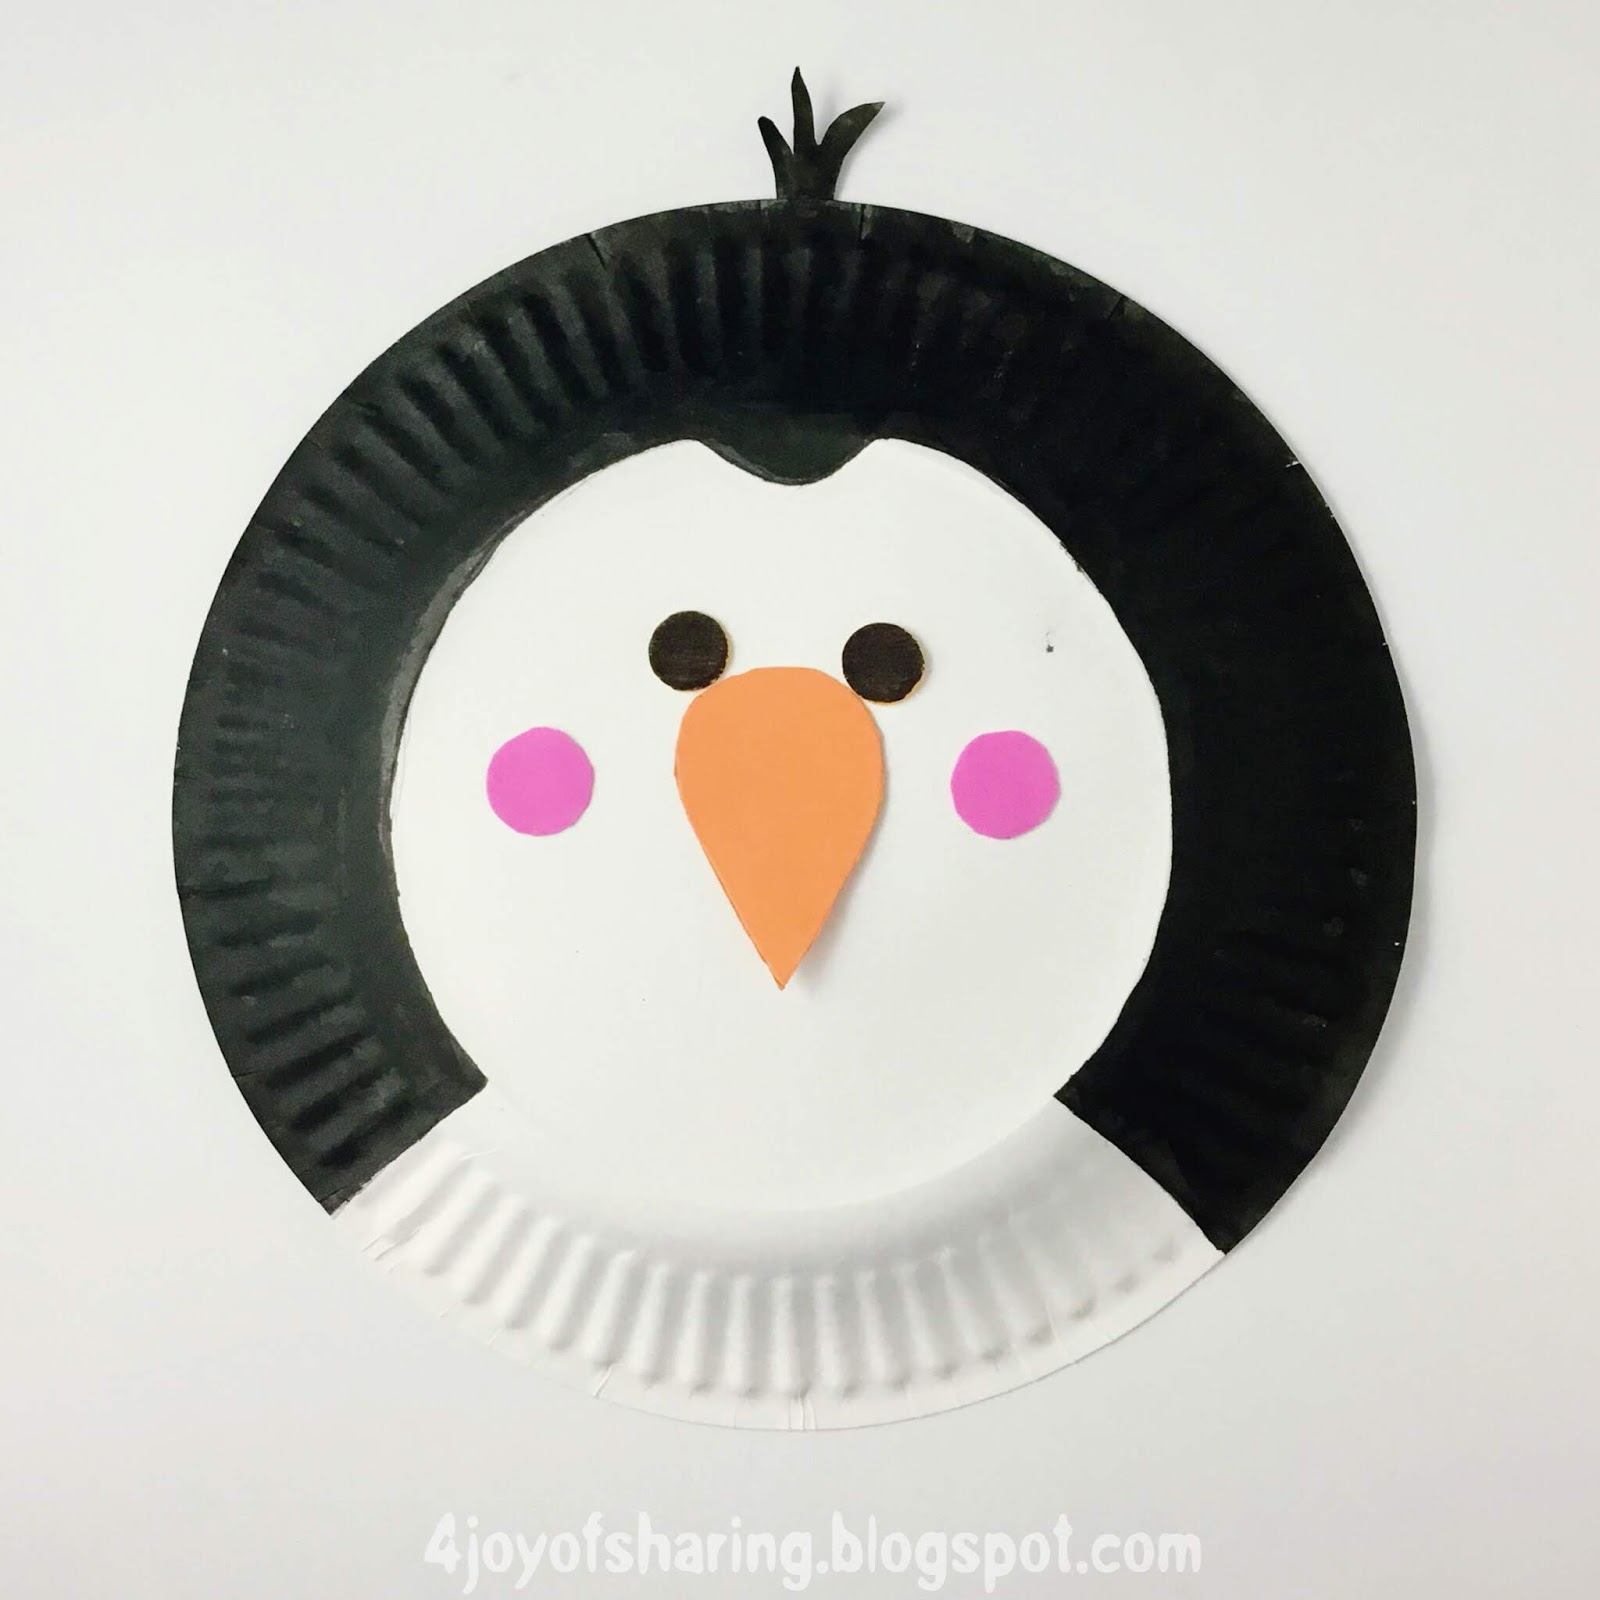 Craft for kids, Paper plate craft, penguin craft, kids craft, easy craft, fun craft, toddler craft, crafty mom, pengiun, Mr. Popper's Penguin